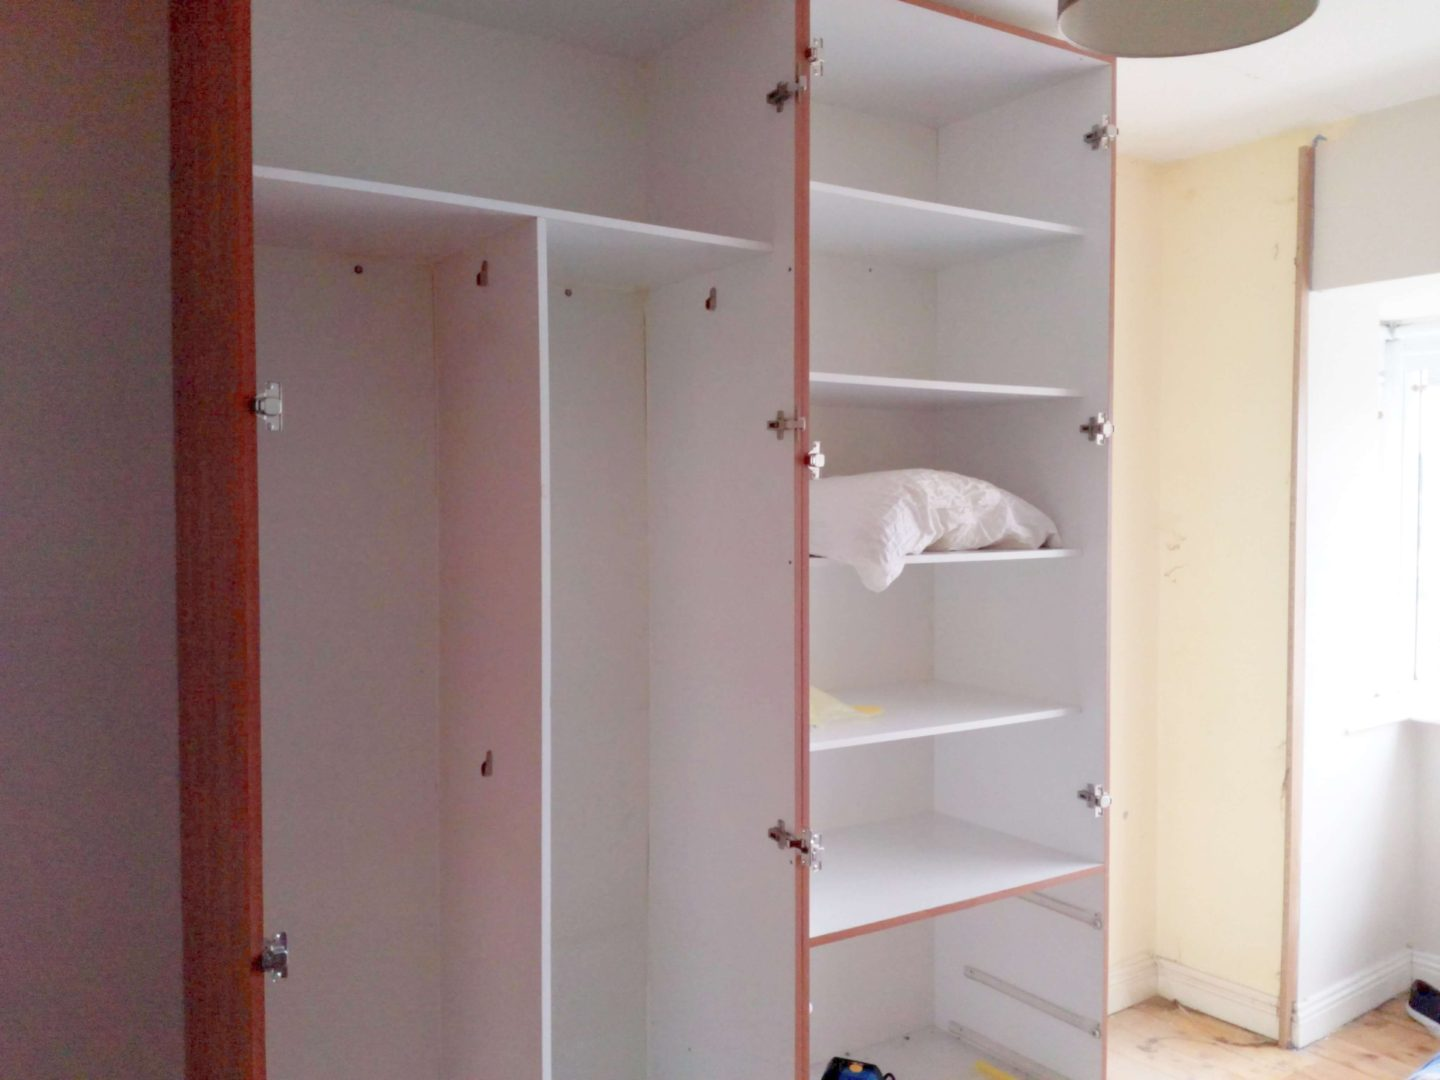 Planning and Assembling an Ikea Pax wardrobe - Our Home